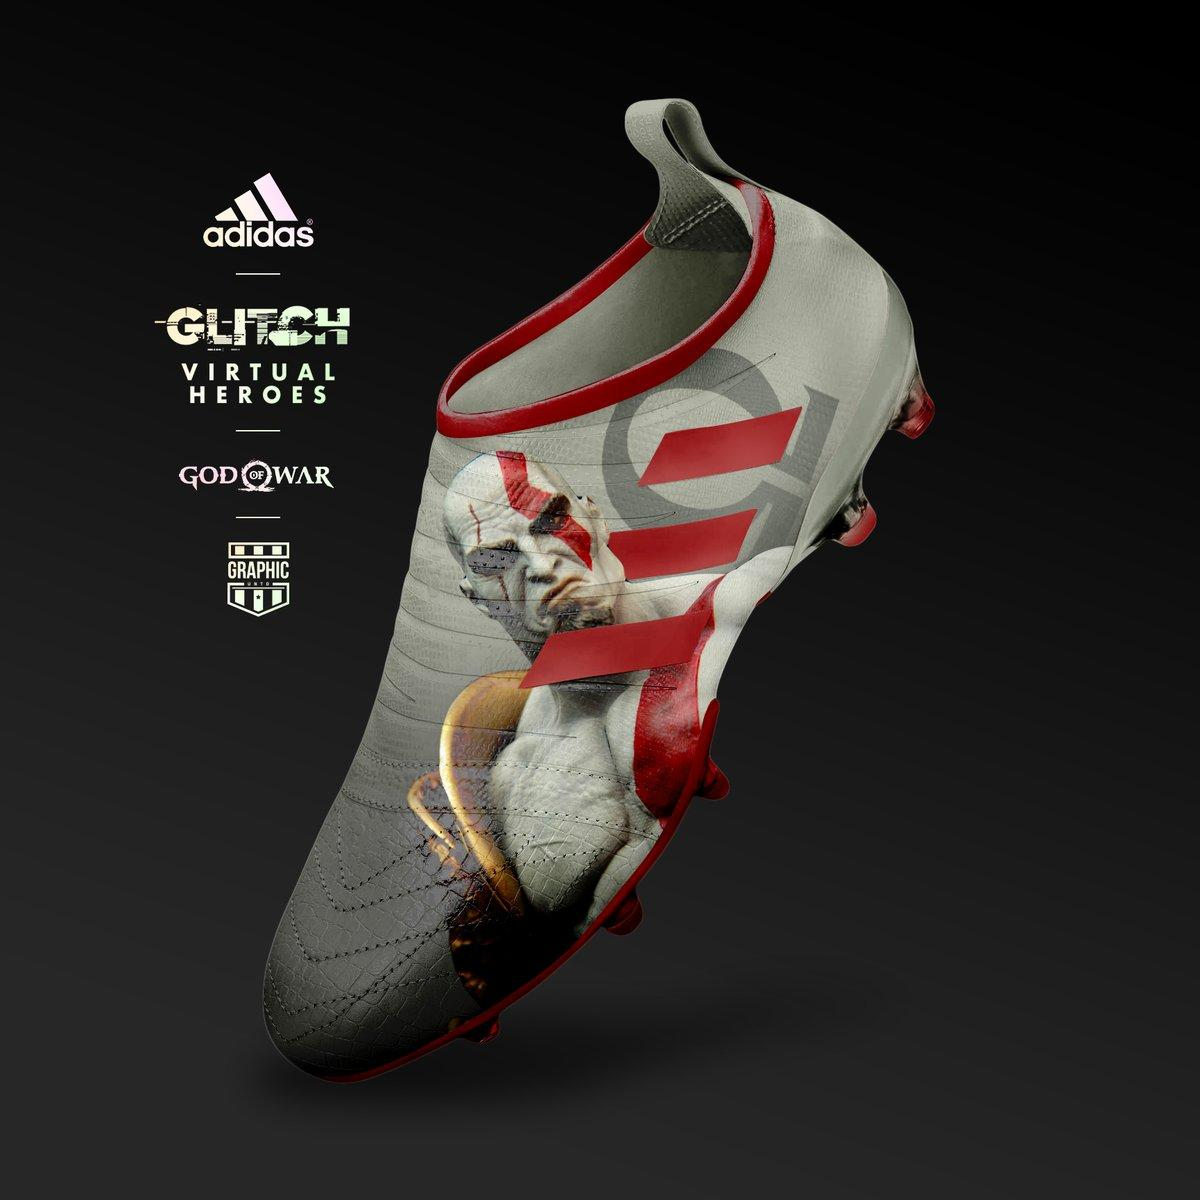 Spectacular Adidas Glitch Virtual Heroes Concept Boots